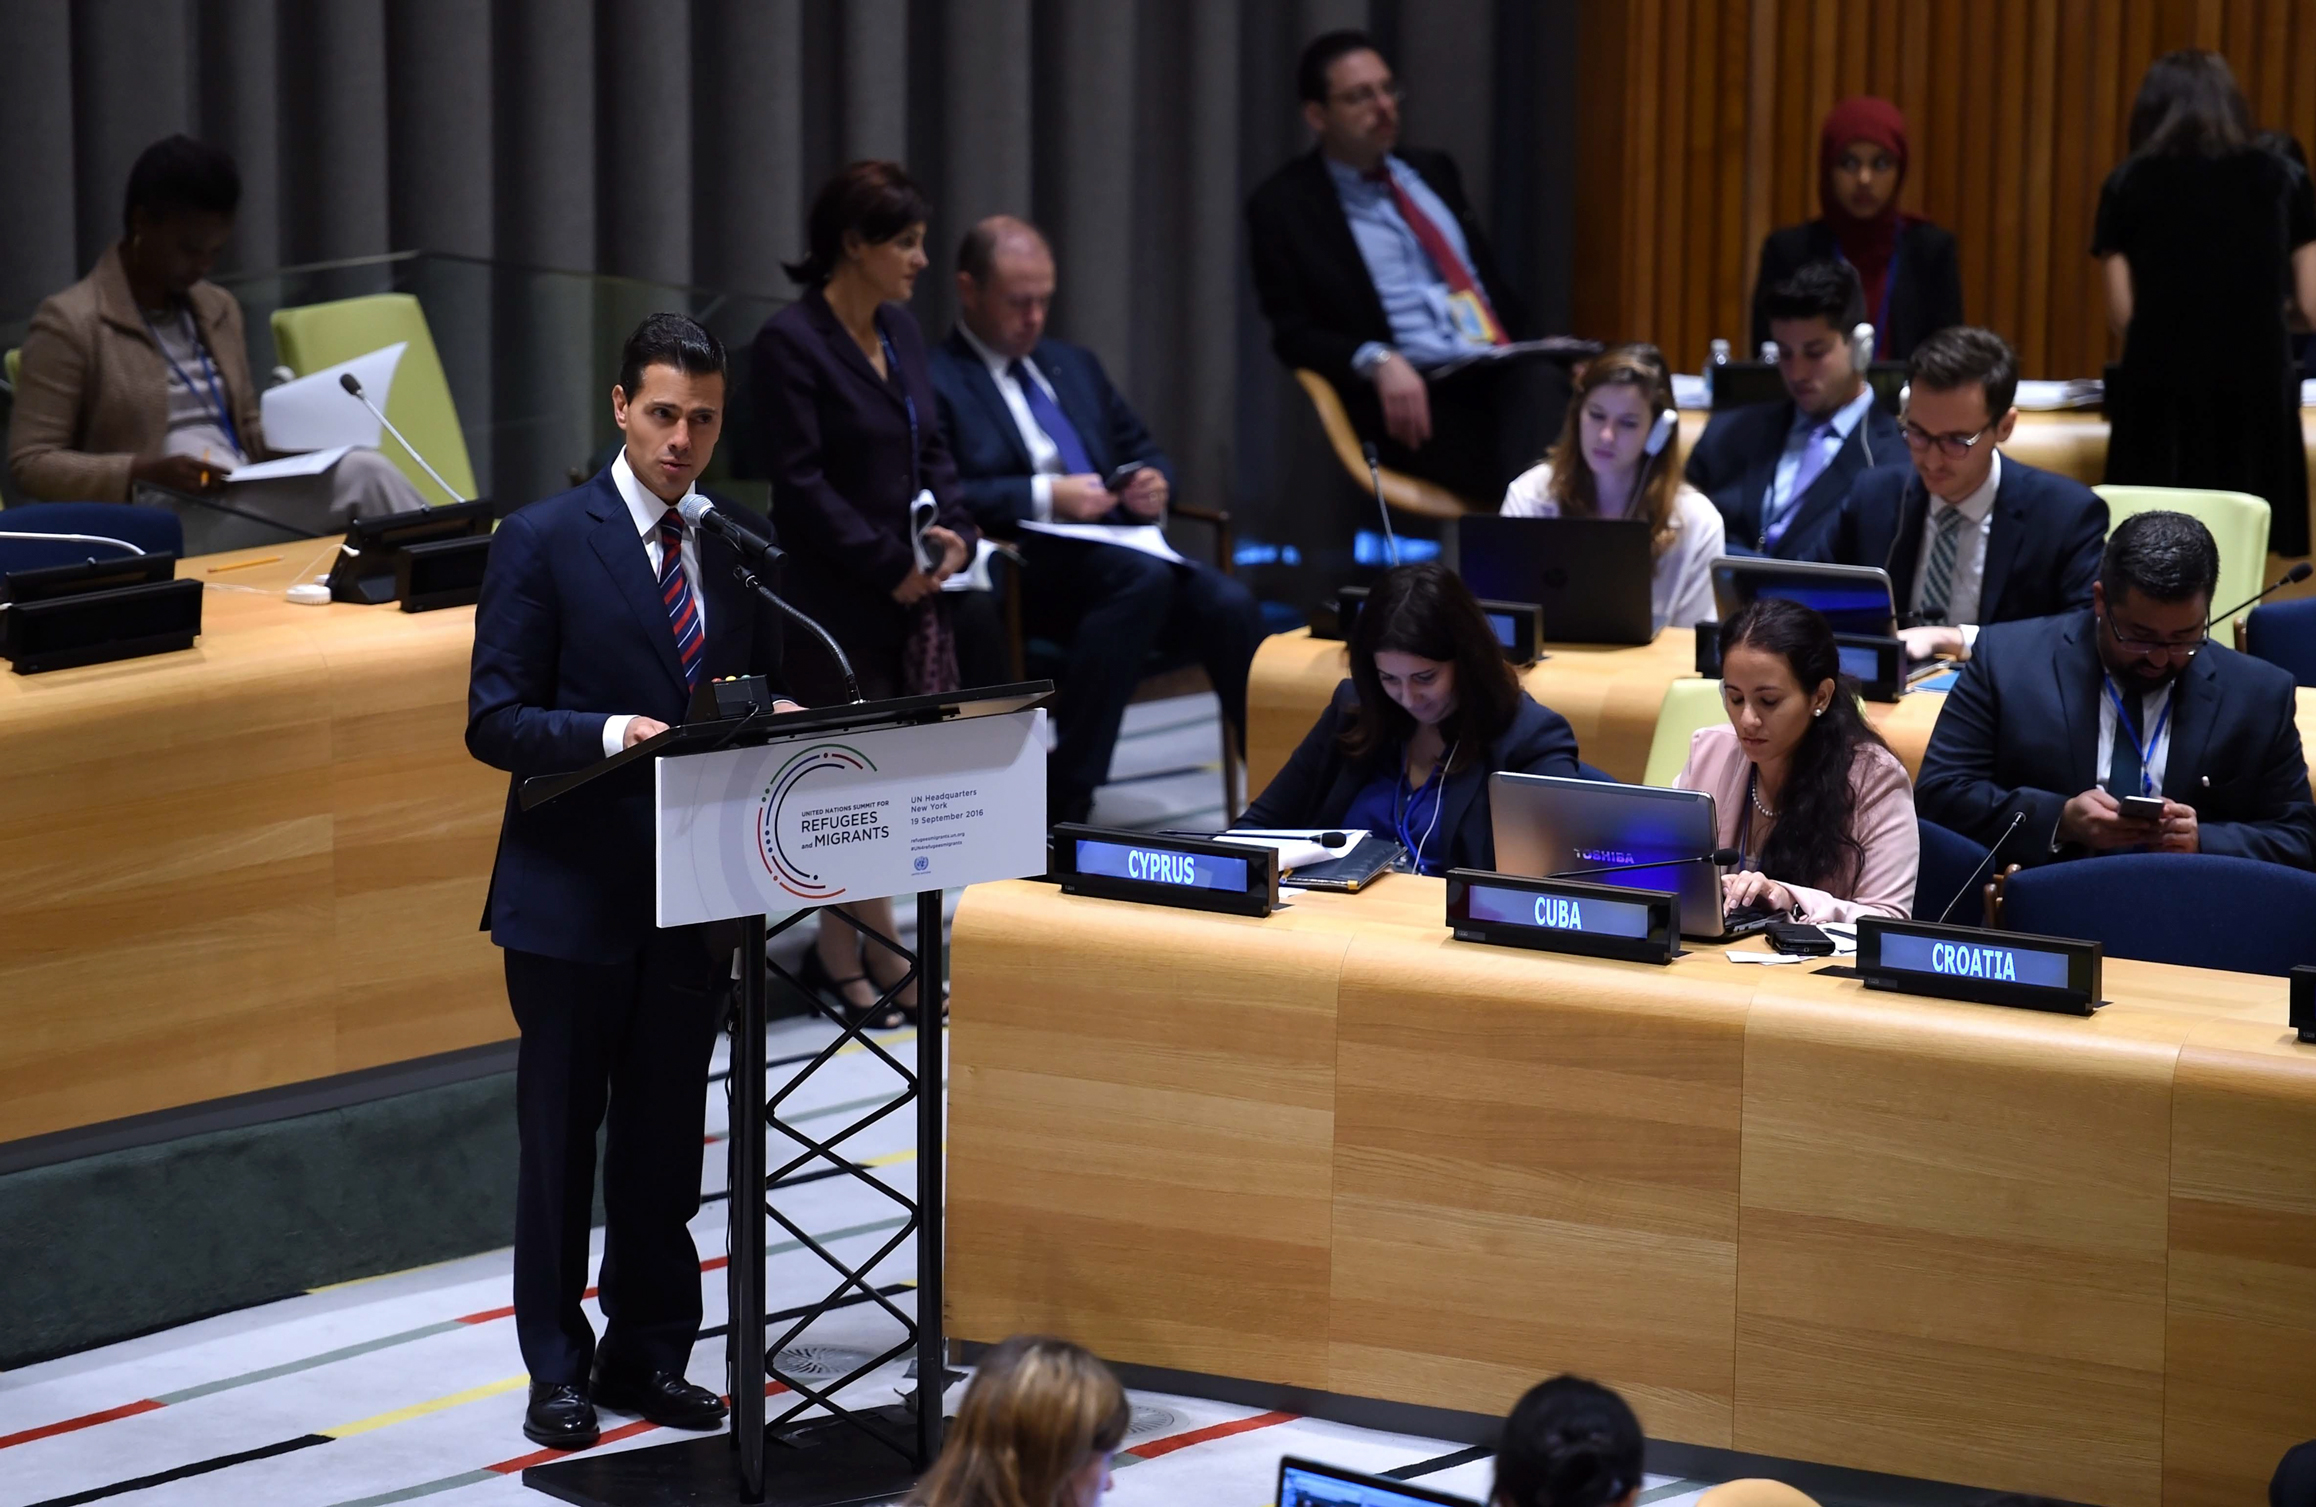 We started a dialogue that must foster  responsibility and cooperation among nations; it is time to implement an inclusive, supportive vision, he said.